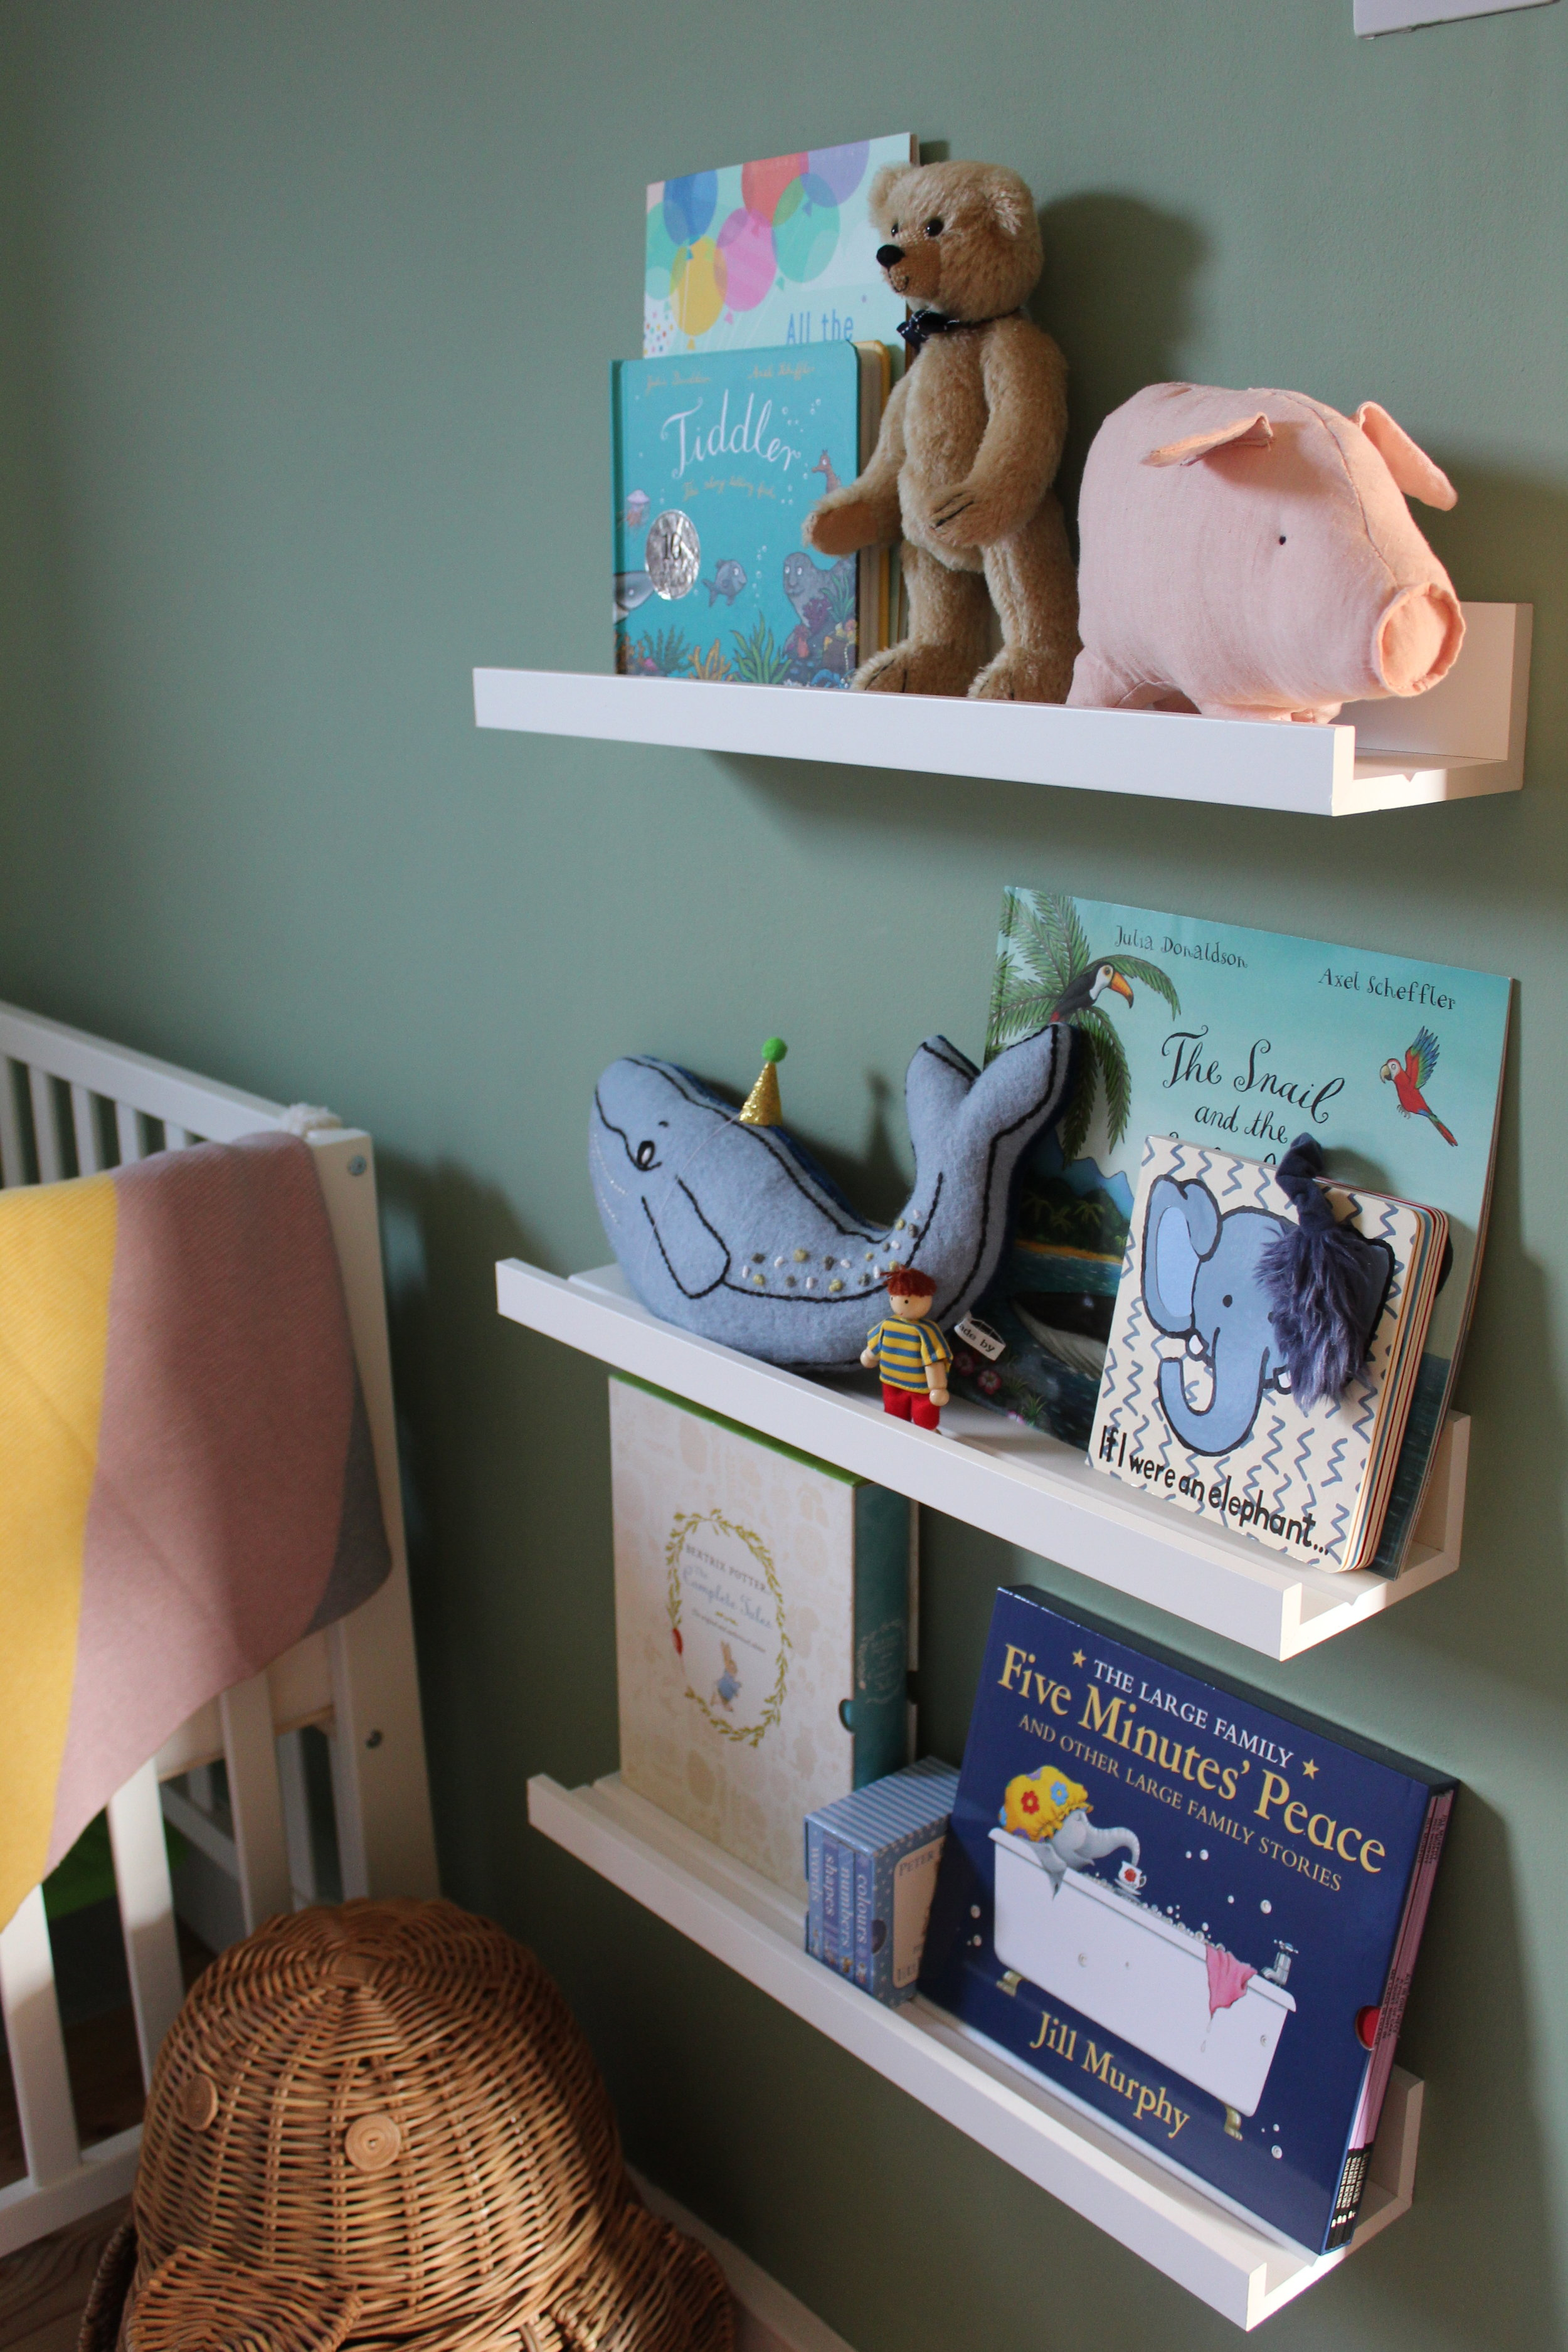 The books and toys were purchased by the parents, but I particularly love the linen pig from Arket.